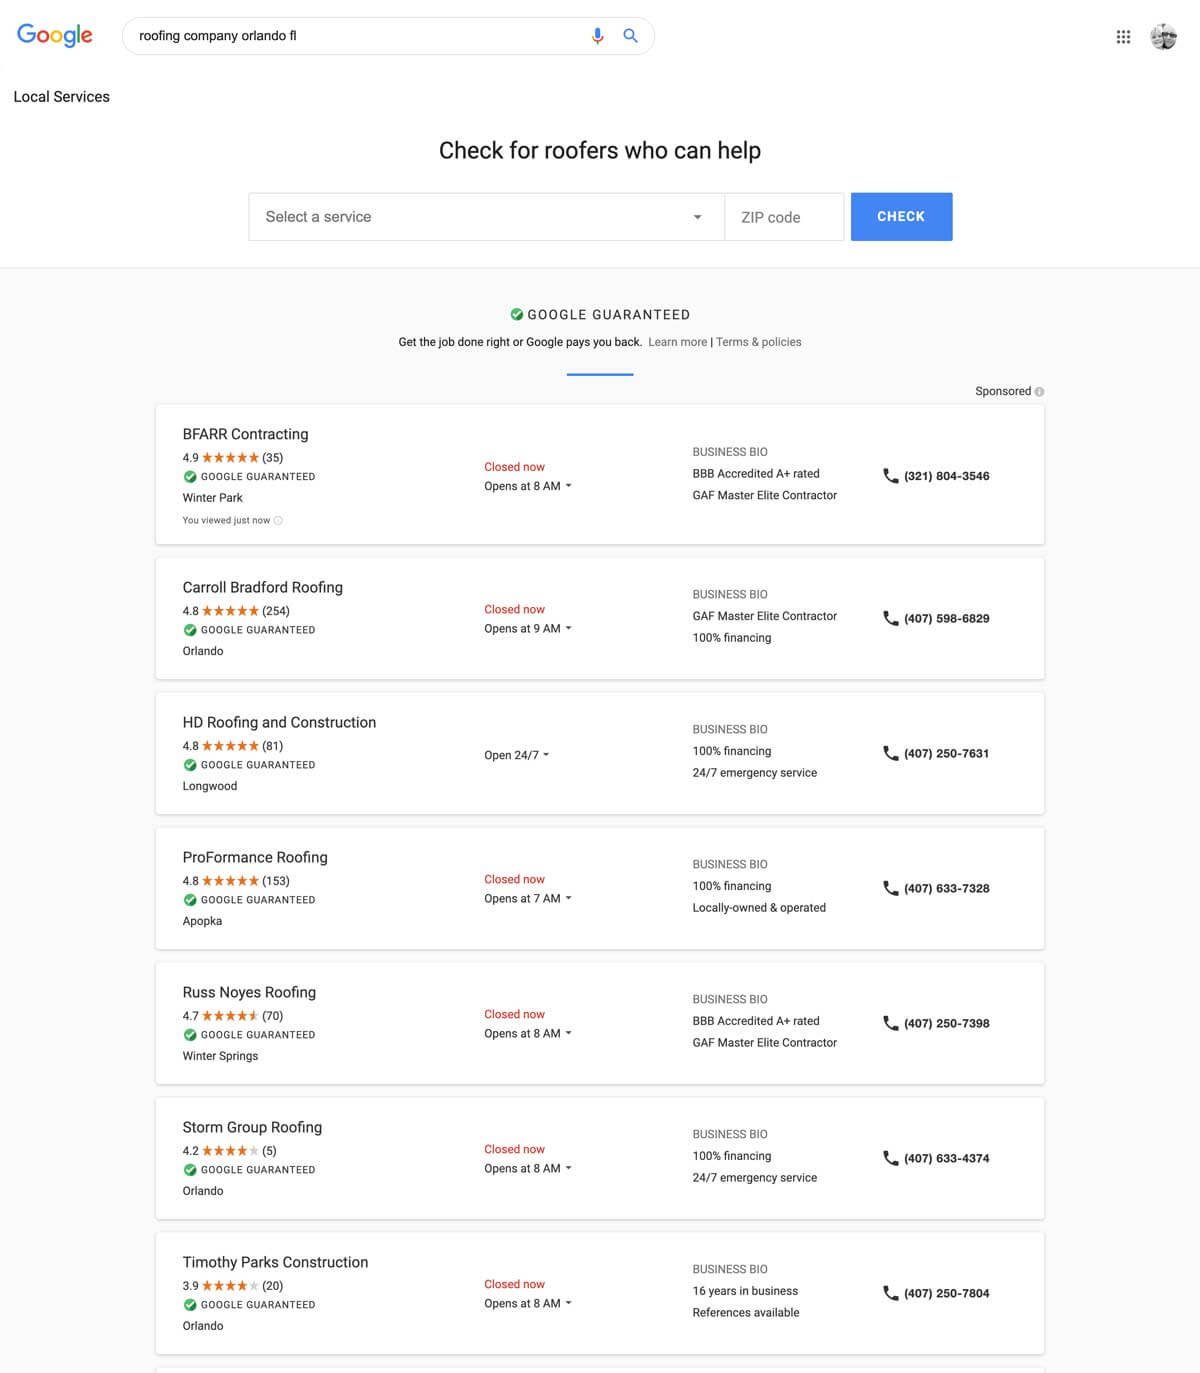 Google-local-Services